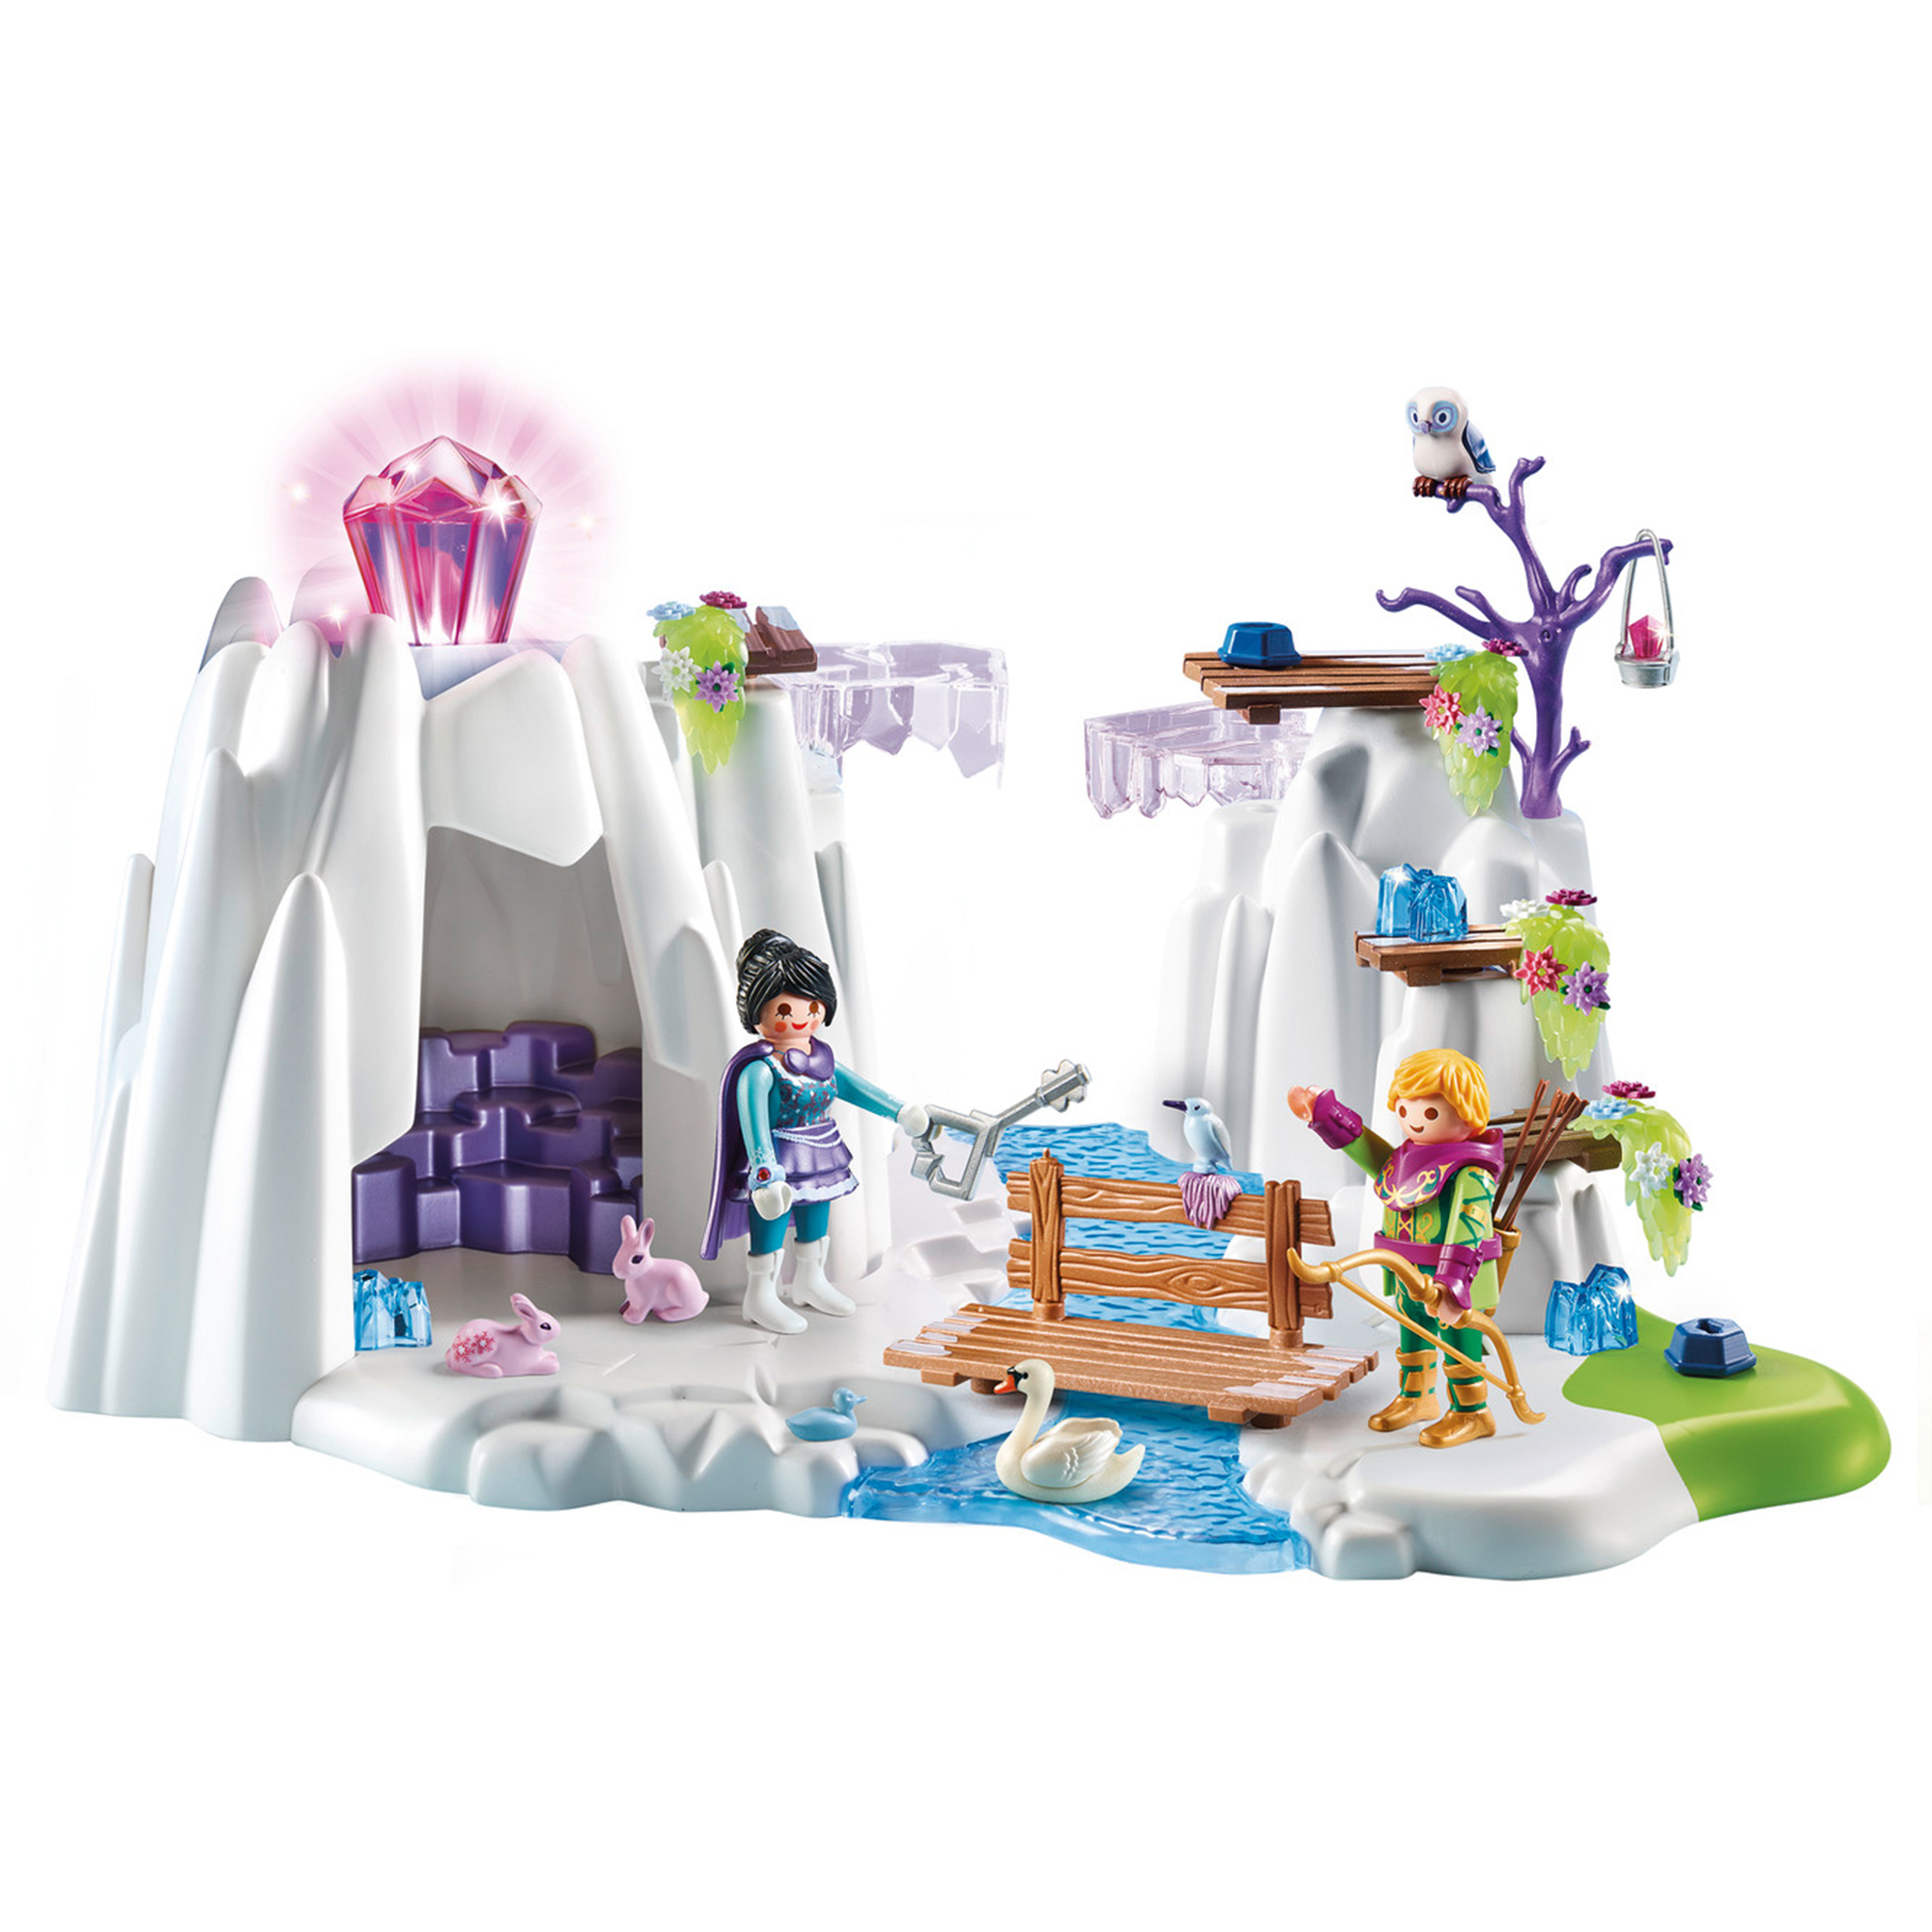 Picture of Playmobil 9470 Magic Crystal Diamond Hideout with Shiny Crystal